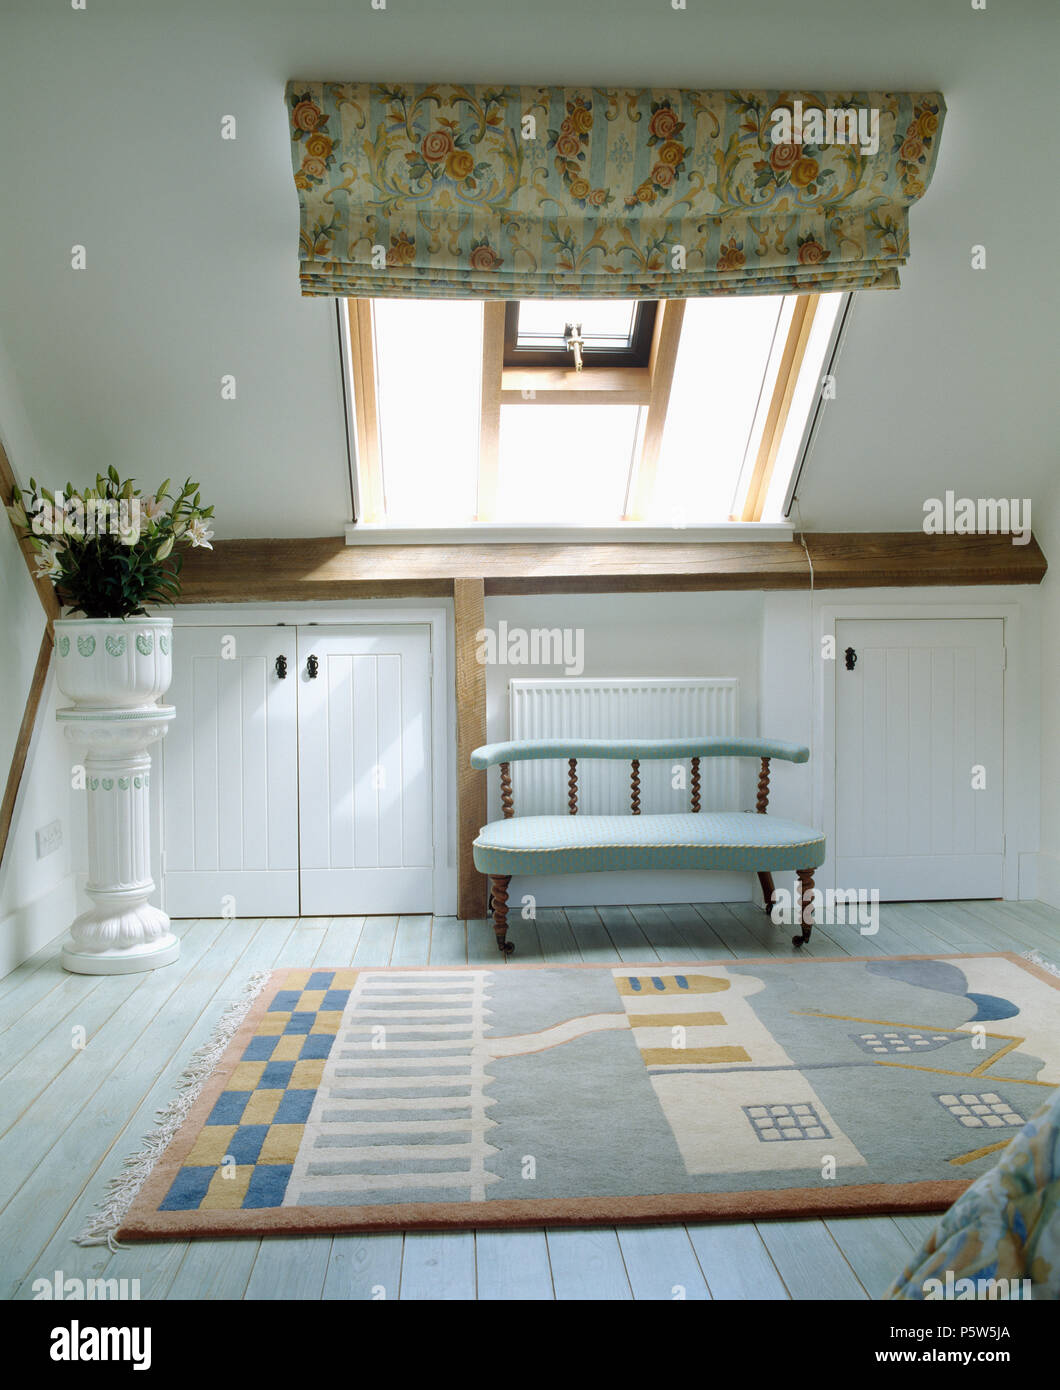 Small sofa below Velux window with floral blind in loft conversion bedroom with patterned rug on white floorboards Stock Photo